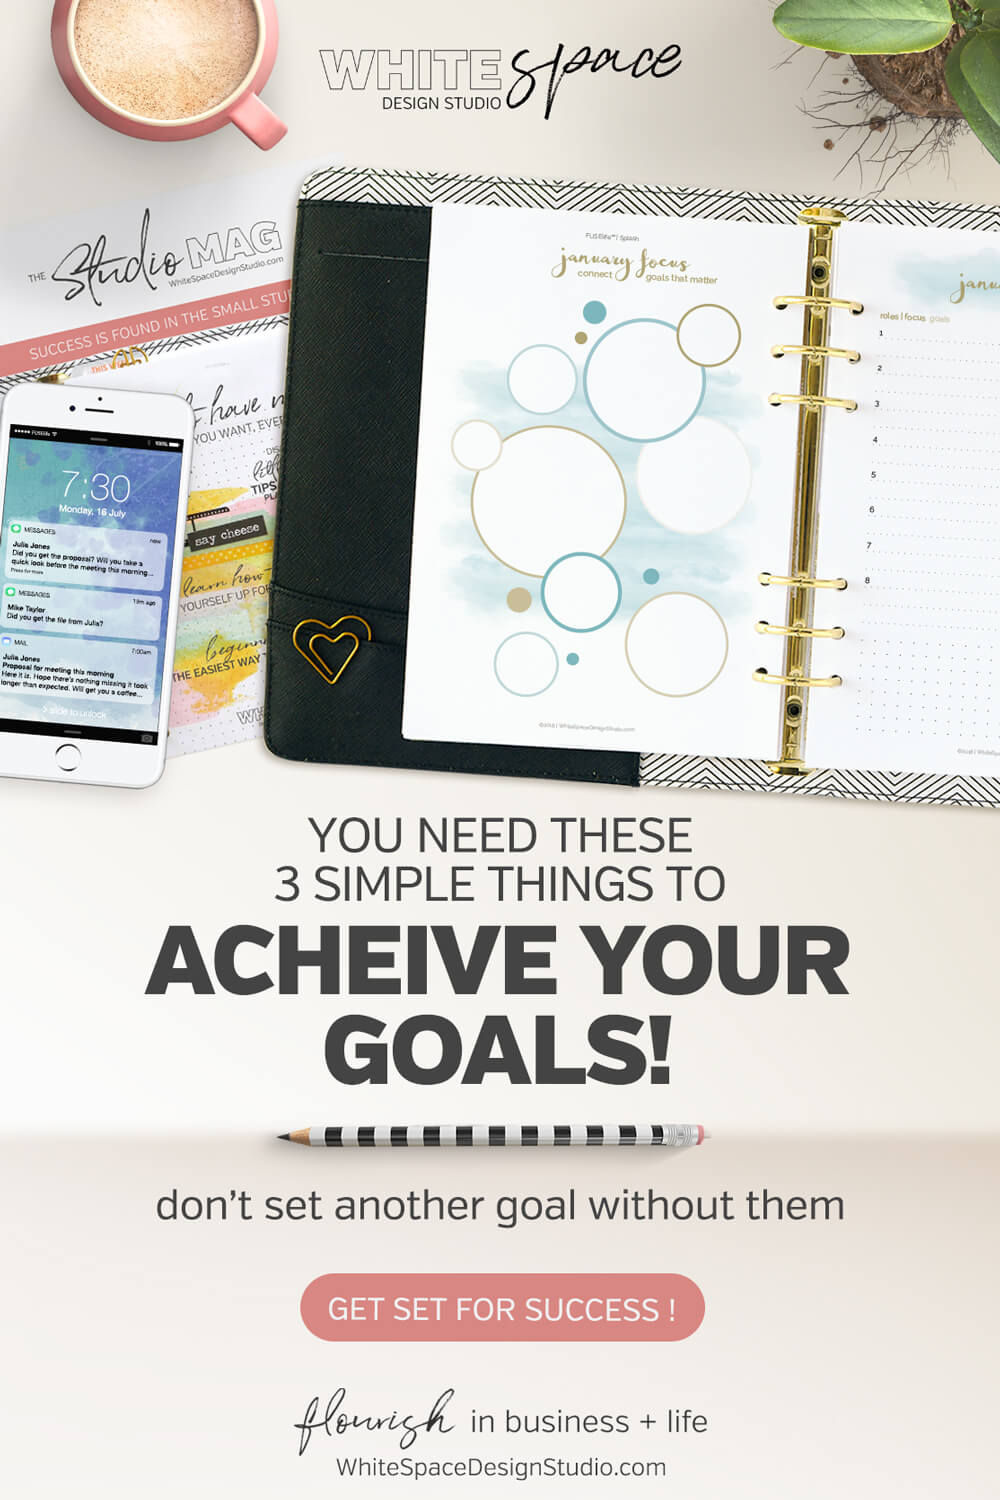 Using these three simple things will practically guarantee your success. Don't set another goal without them! If you've already started, modify your plan with these. | whitespacedesignstudio.com #goalsetting#smartgoals #newyeargoals #plannerprintables #flourishwithwhitespace